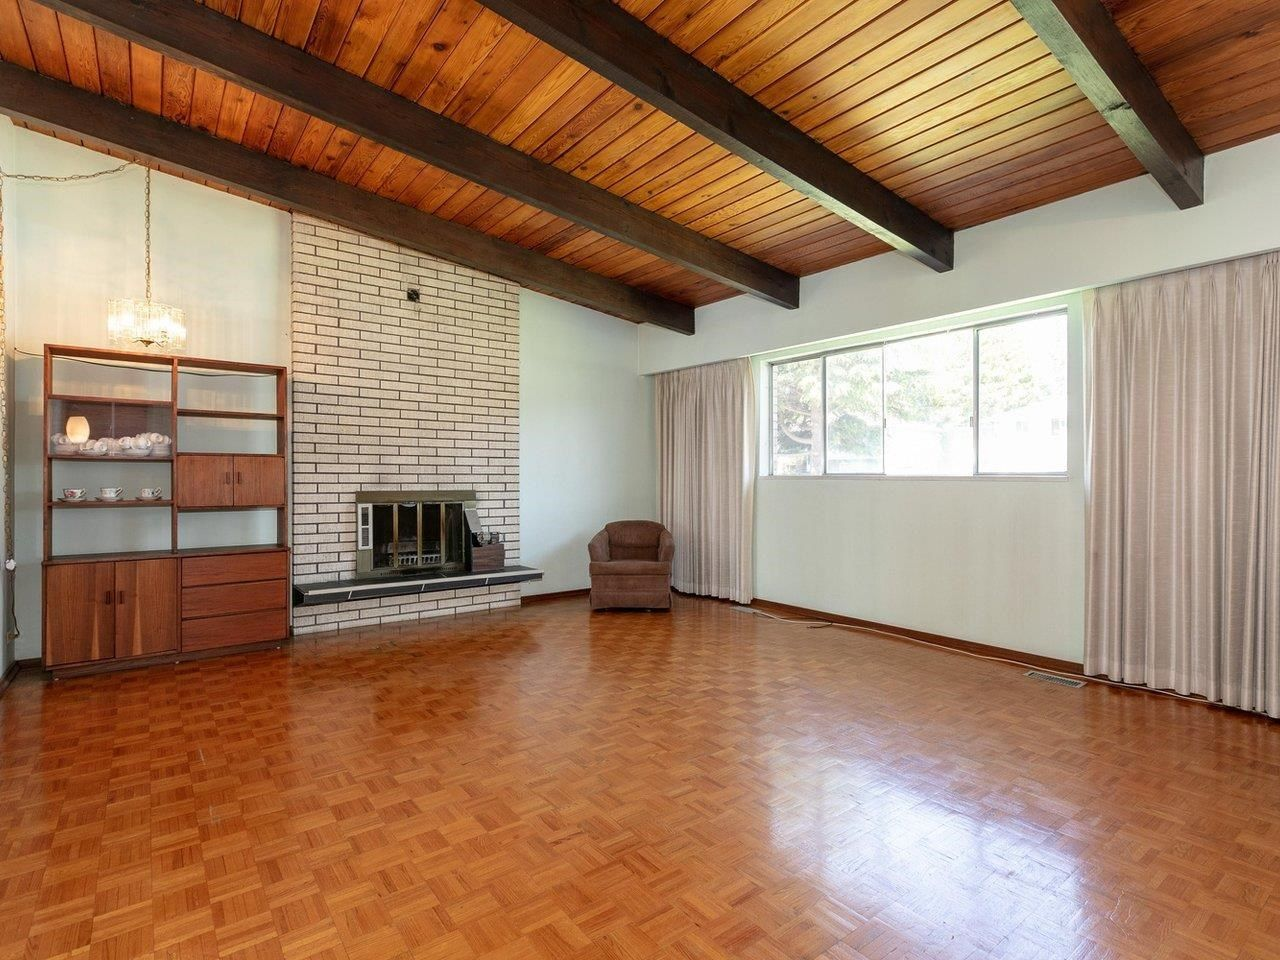 Photo 2: Photos: 6860 HYCREST Drive in Burnaby: Montecito House for sale (Burnaby North)  : MLS®# R2594917